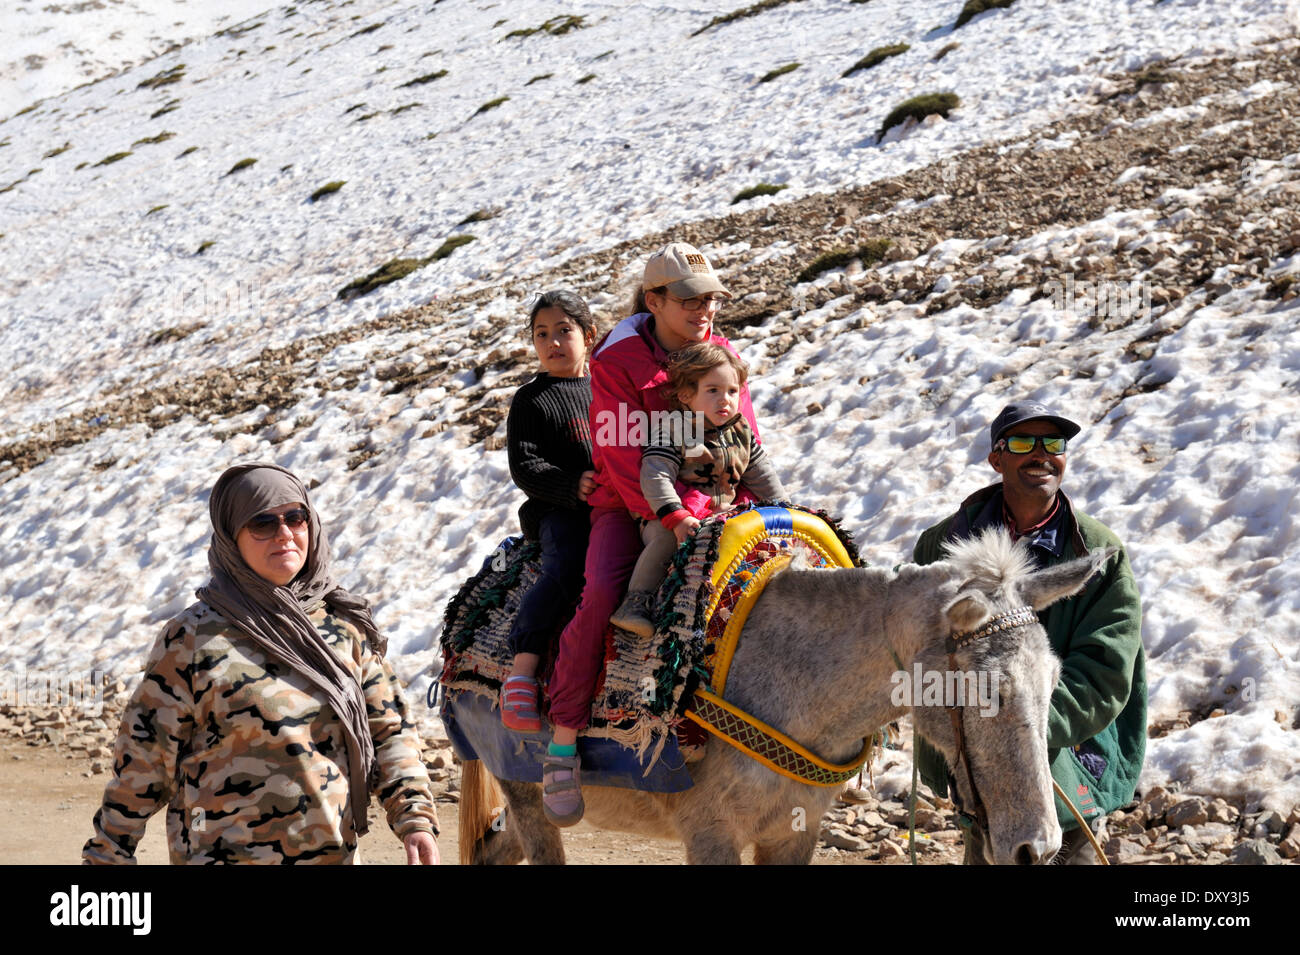 Family being guided on donkey ride Atlas mountains Morocco, Oukaimeden, March, Stock Photo